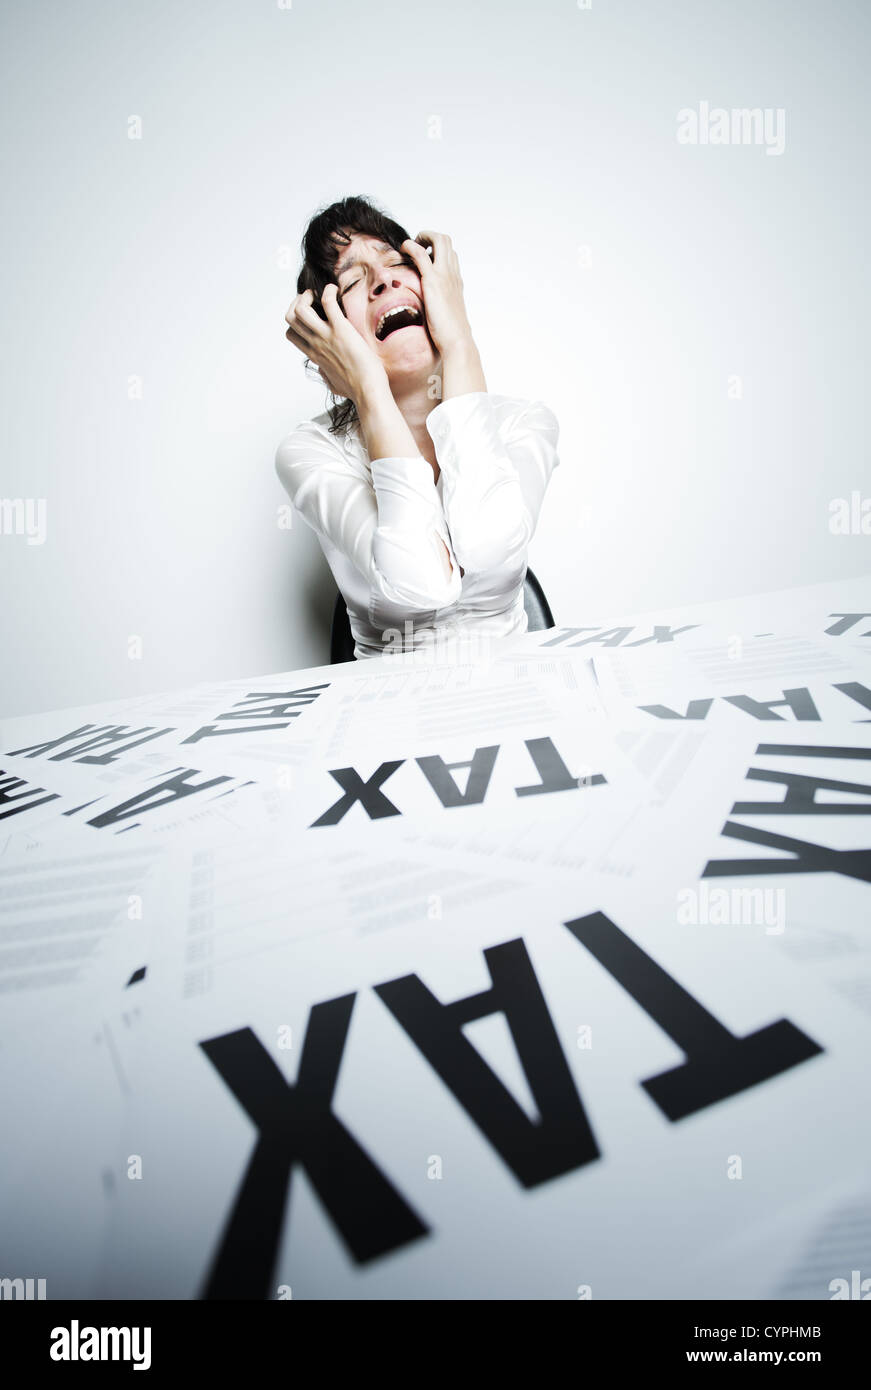 Desperate woman at her taxes-paperwork covered desk to crying bitter tears with her hands on face - Stock Image